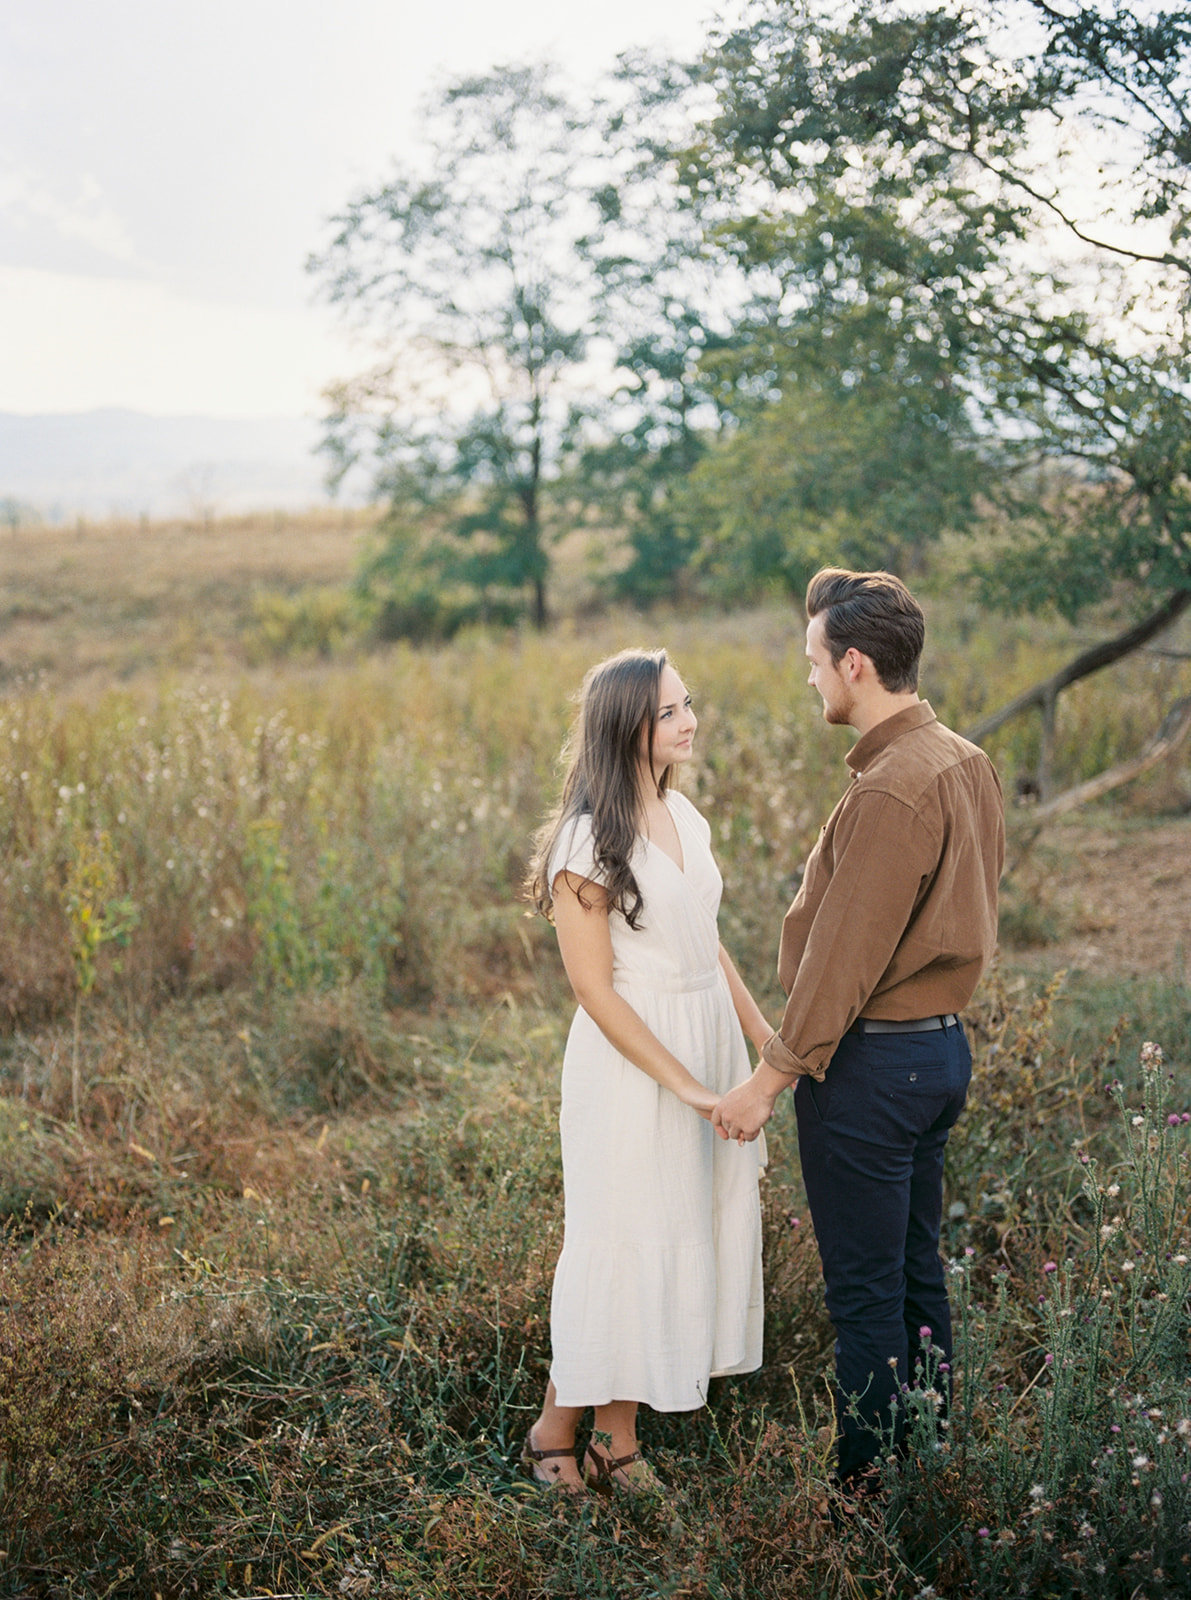 michela-brooke-photo-maryclaire-caleb-farm-engagement-14_websize